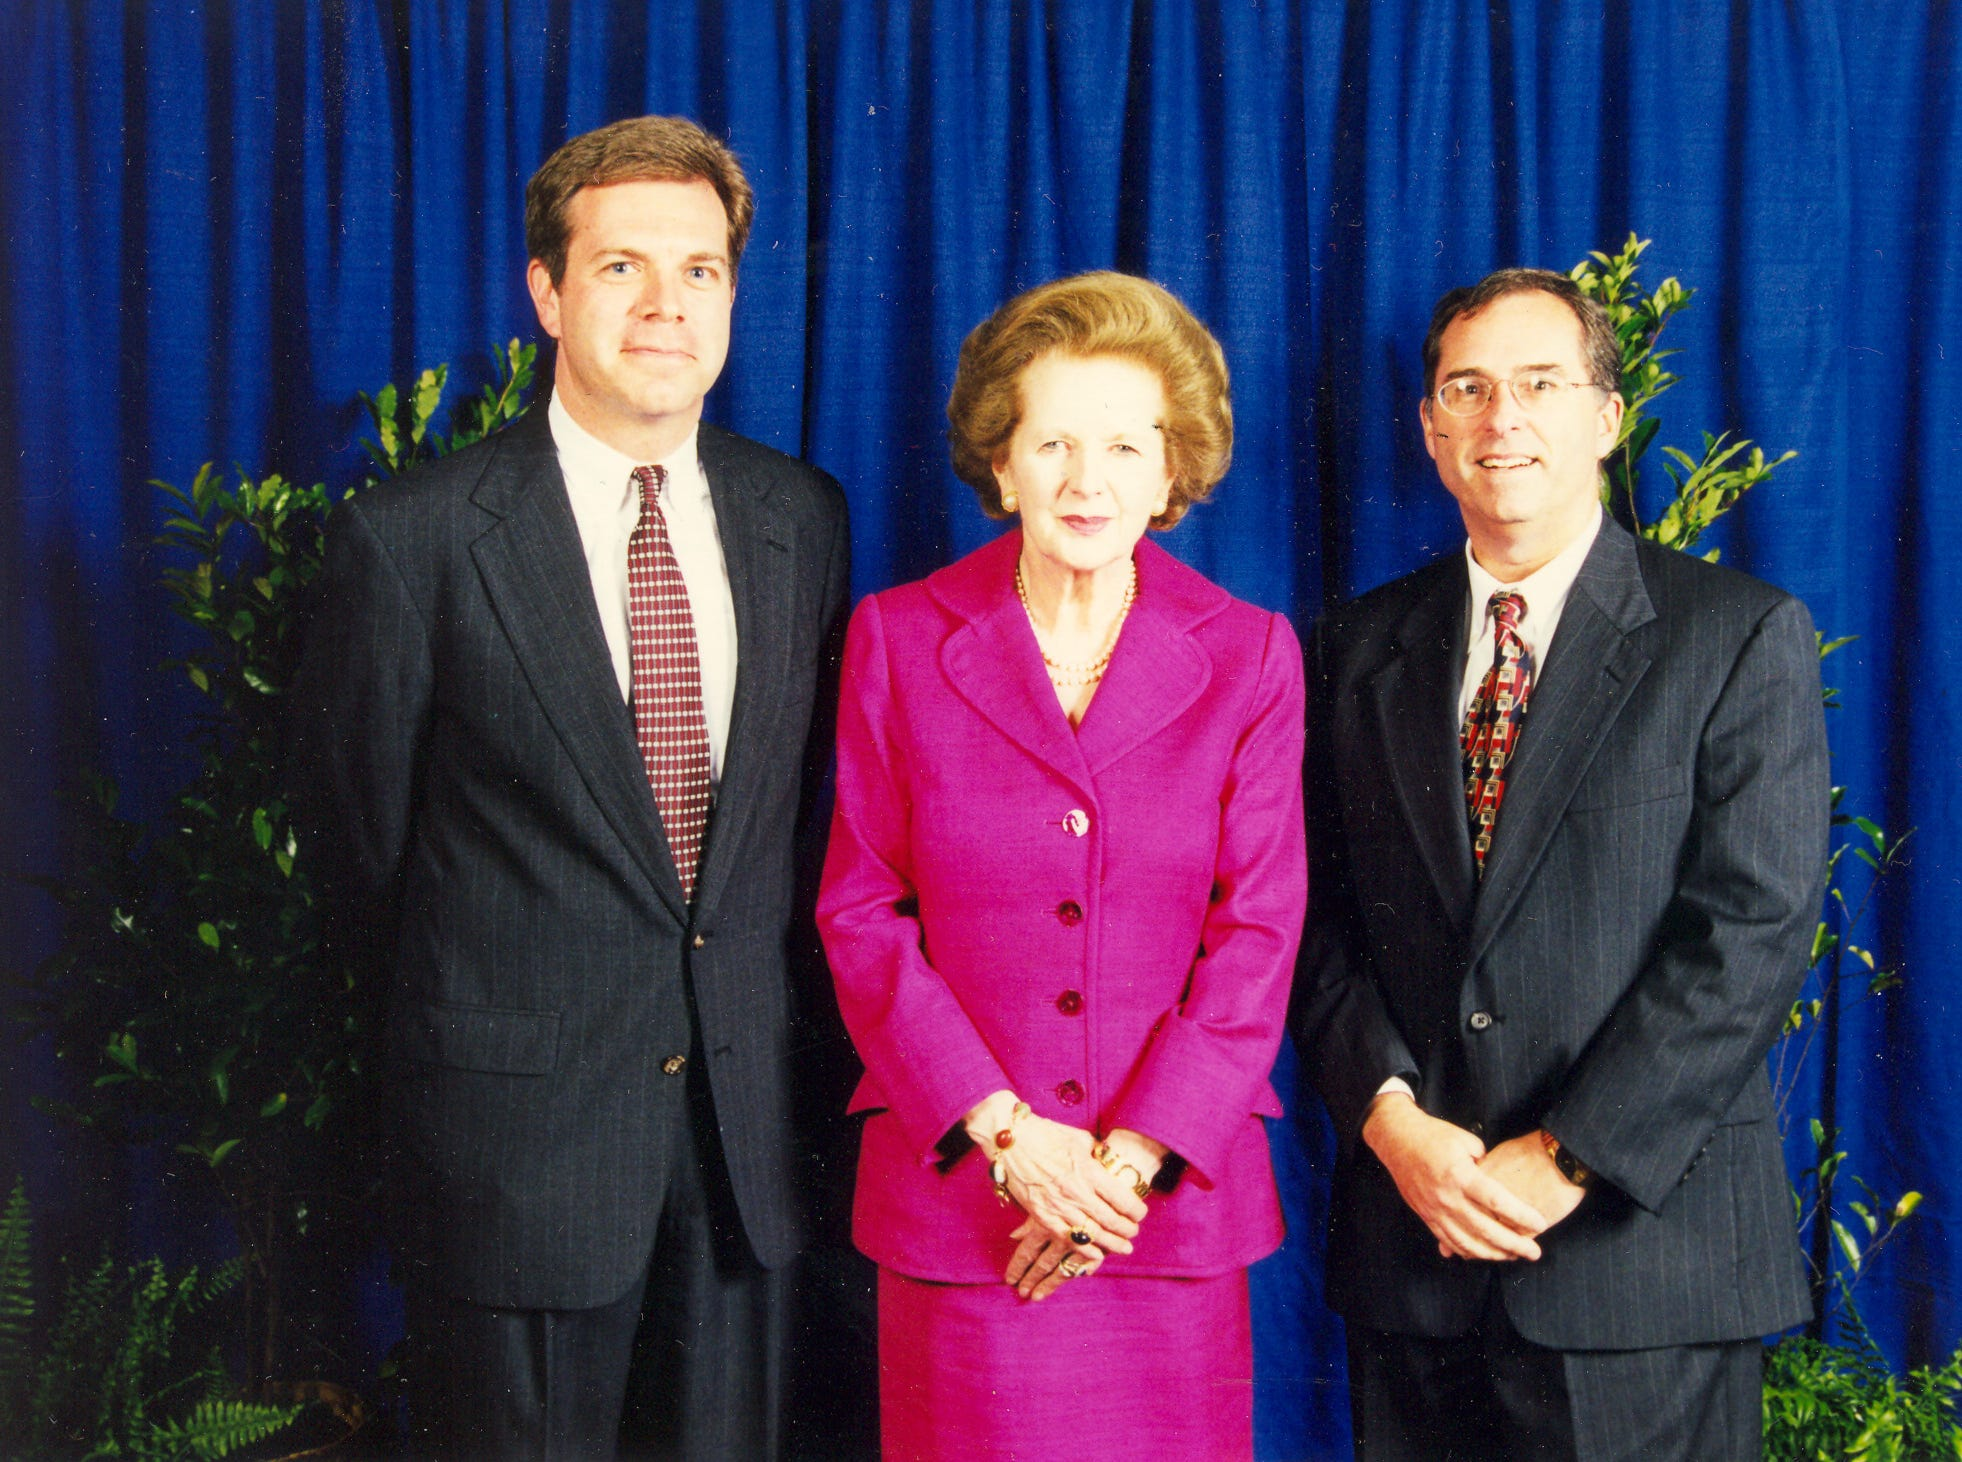 Kentucky Derby Festival's Mike Berry pictured with Margaret Thatcher.